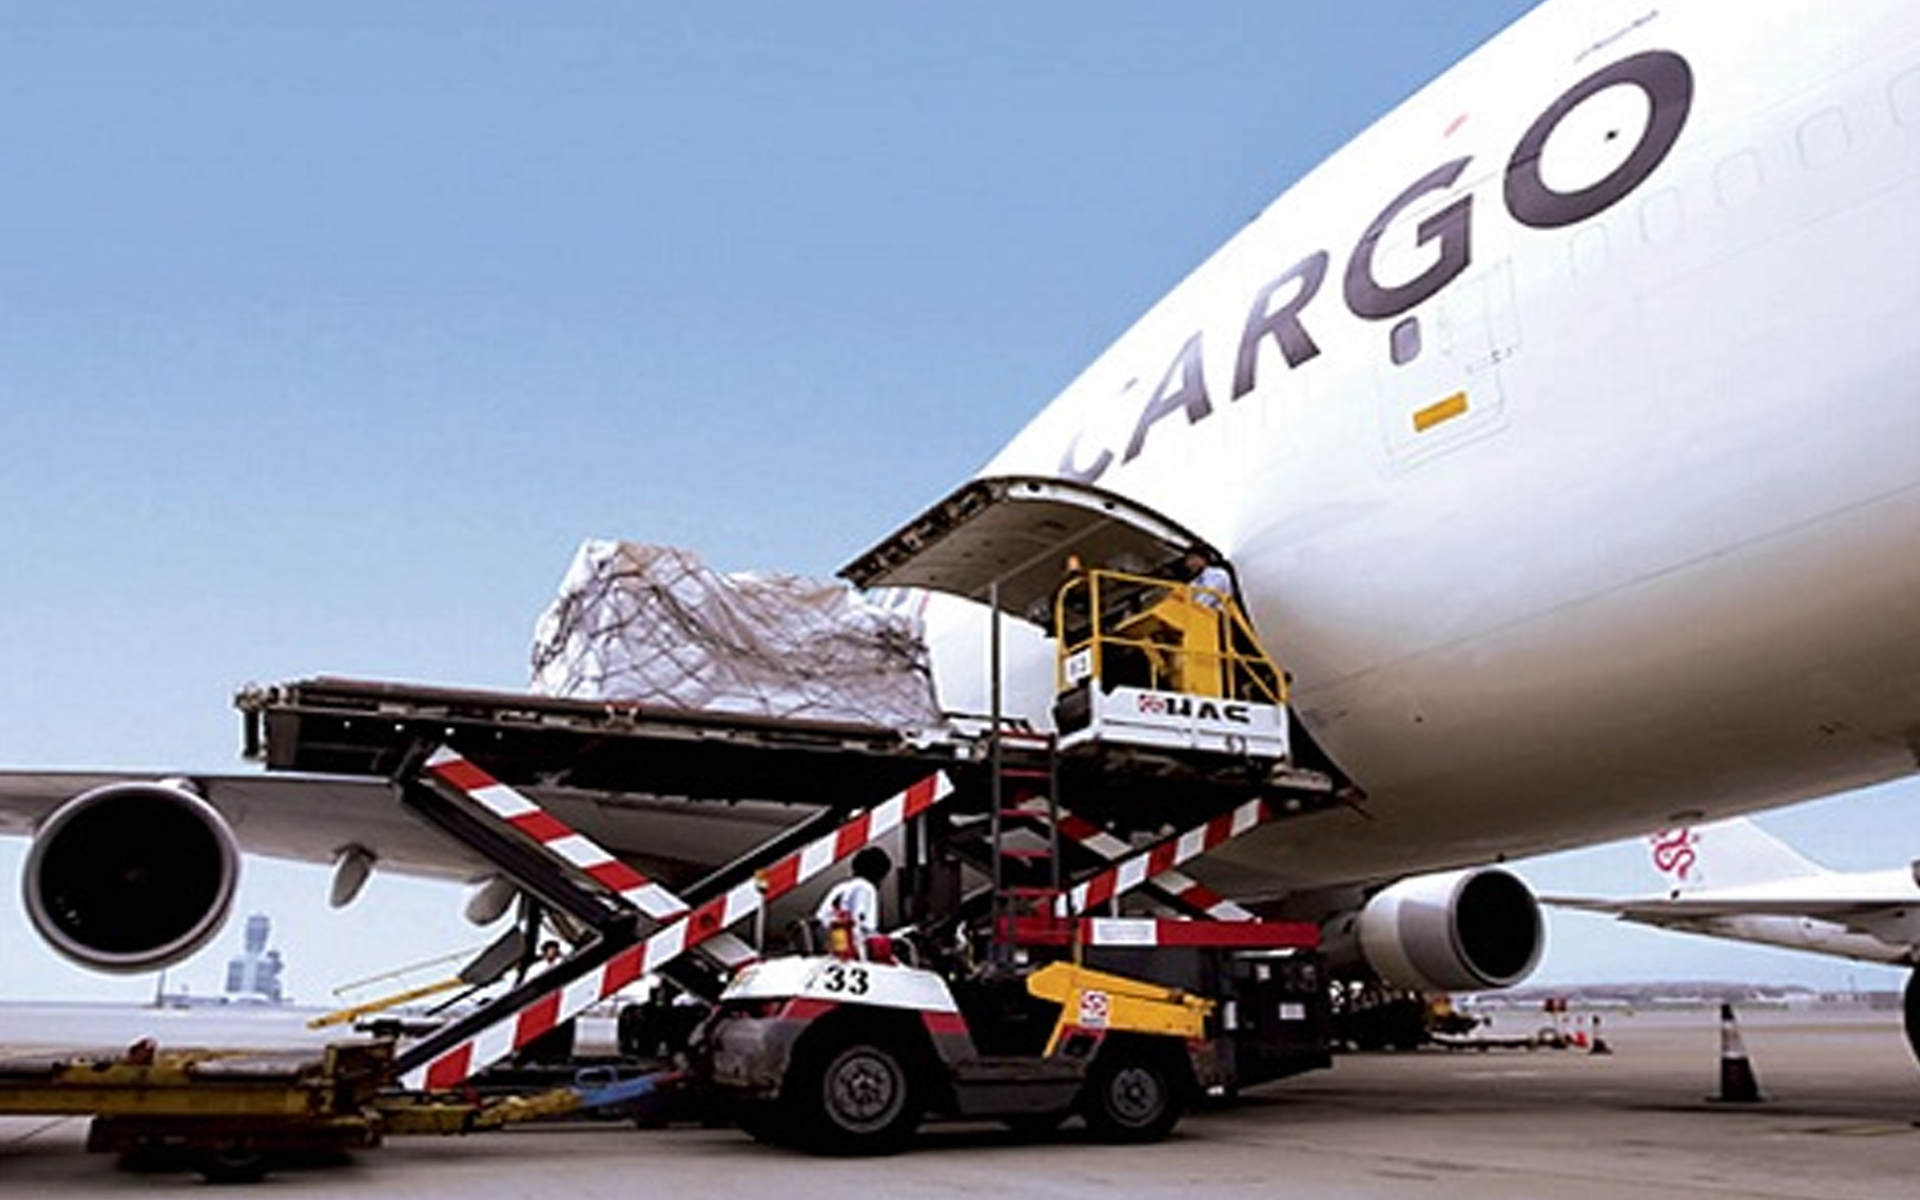 Air Freight Transport – Seacon (K) Limited |Cargo Air Freight